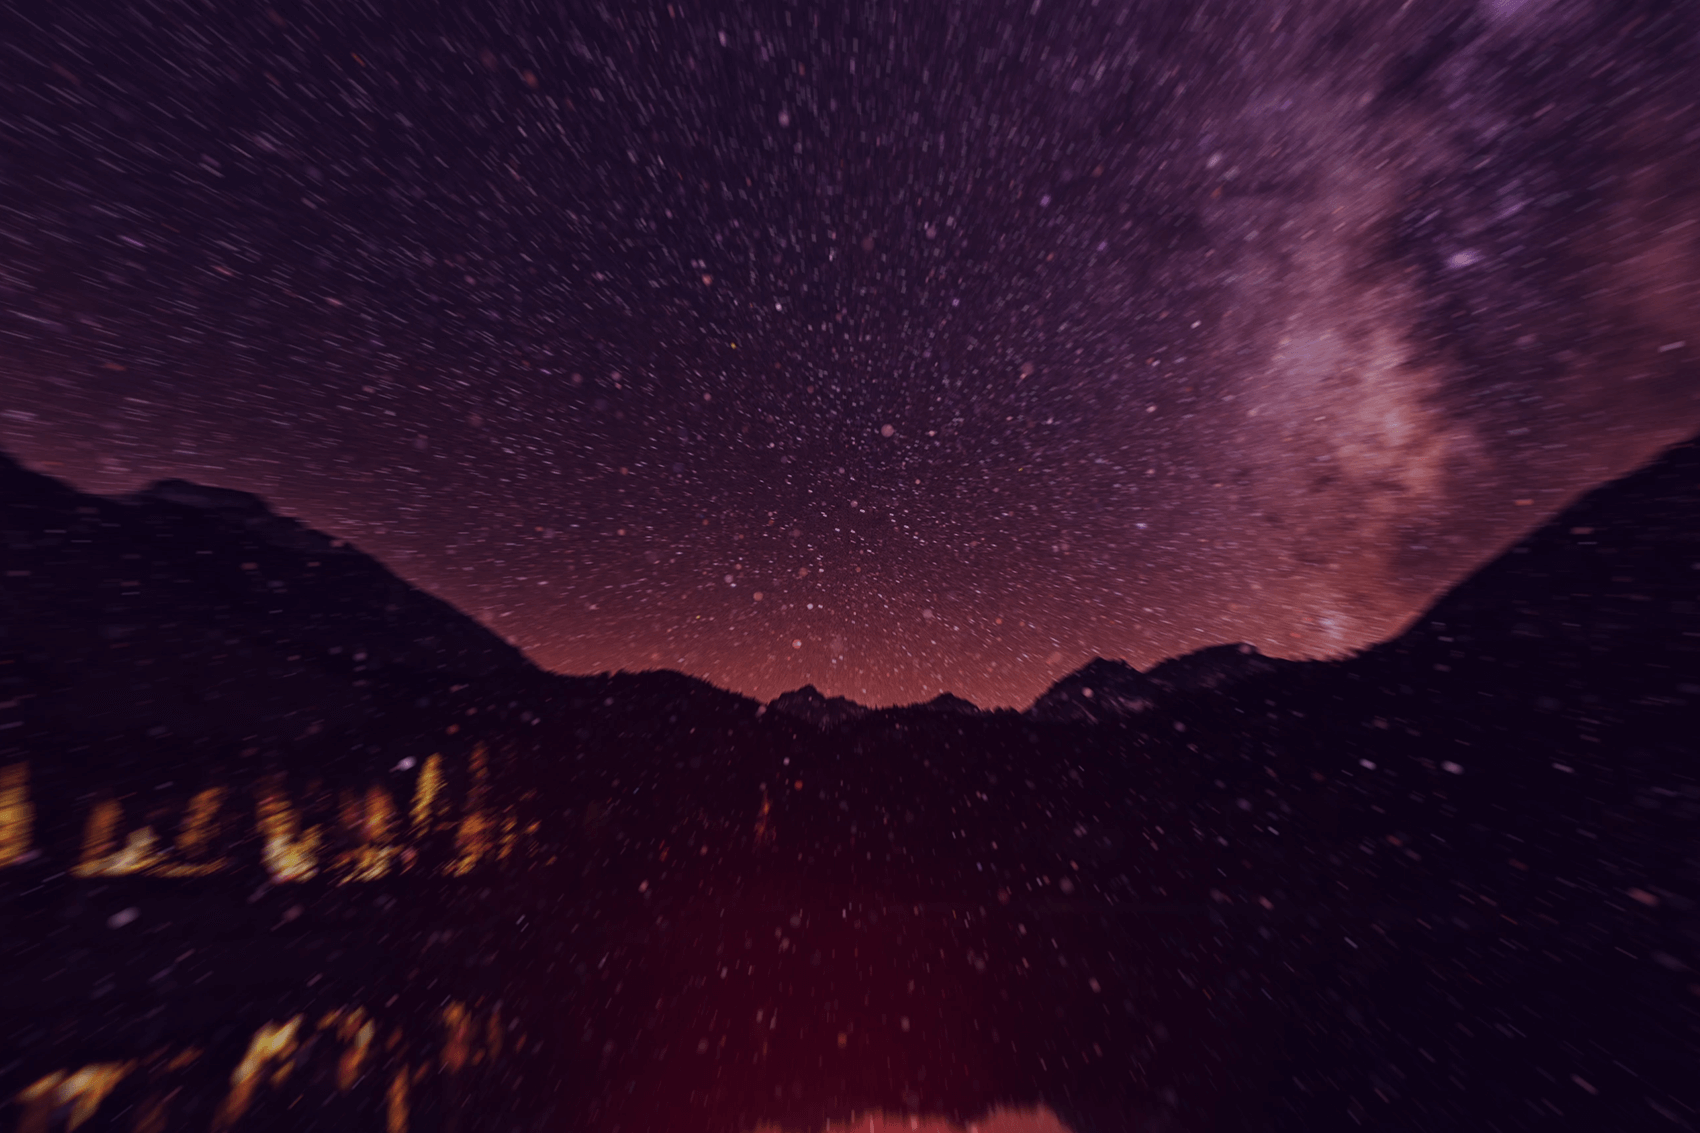 Stars particles over mountains and fire sound